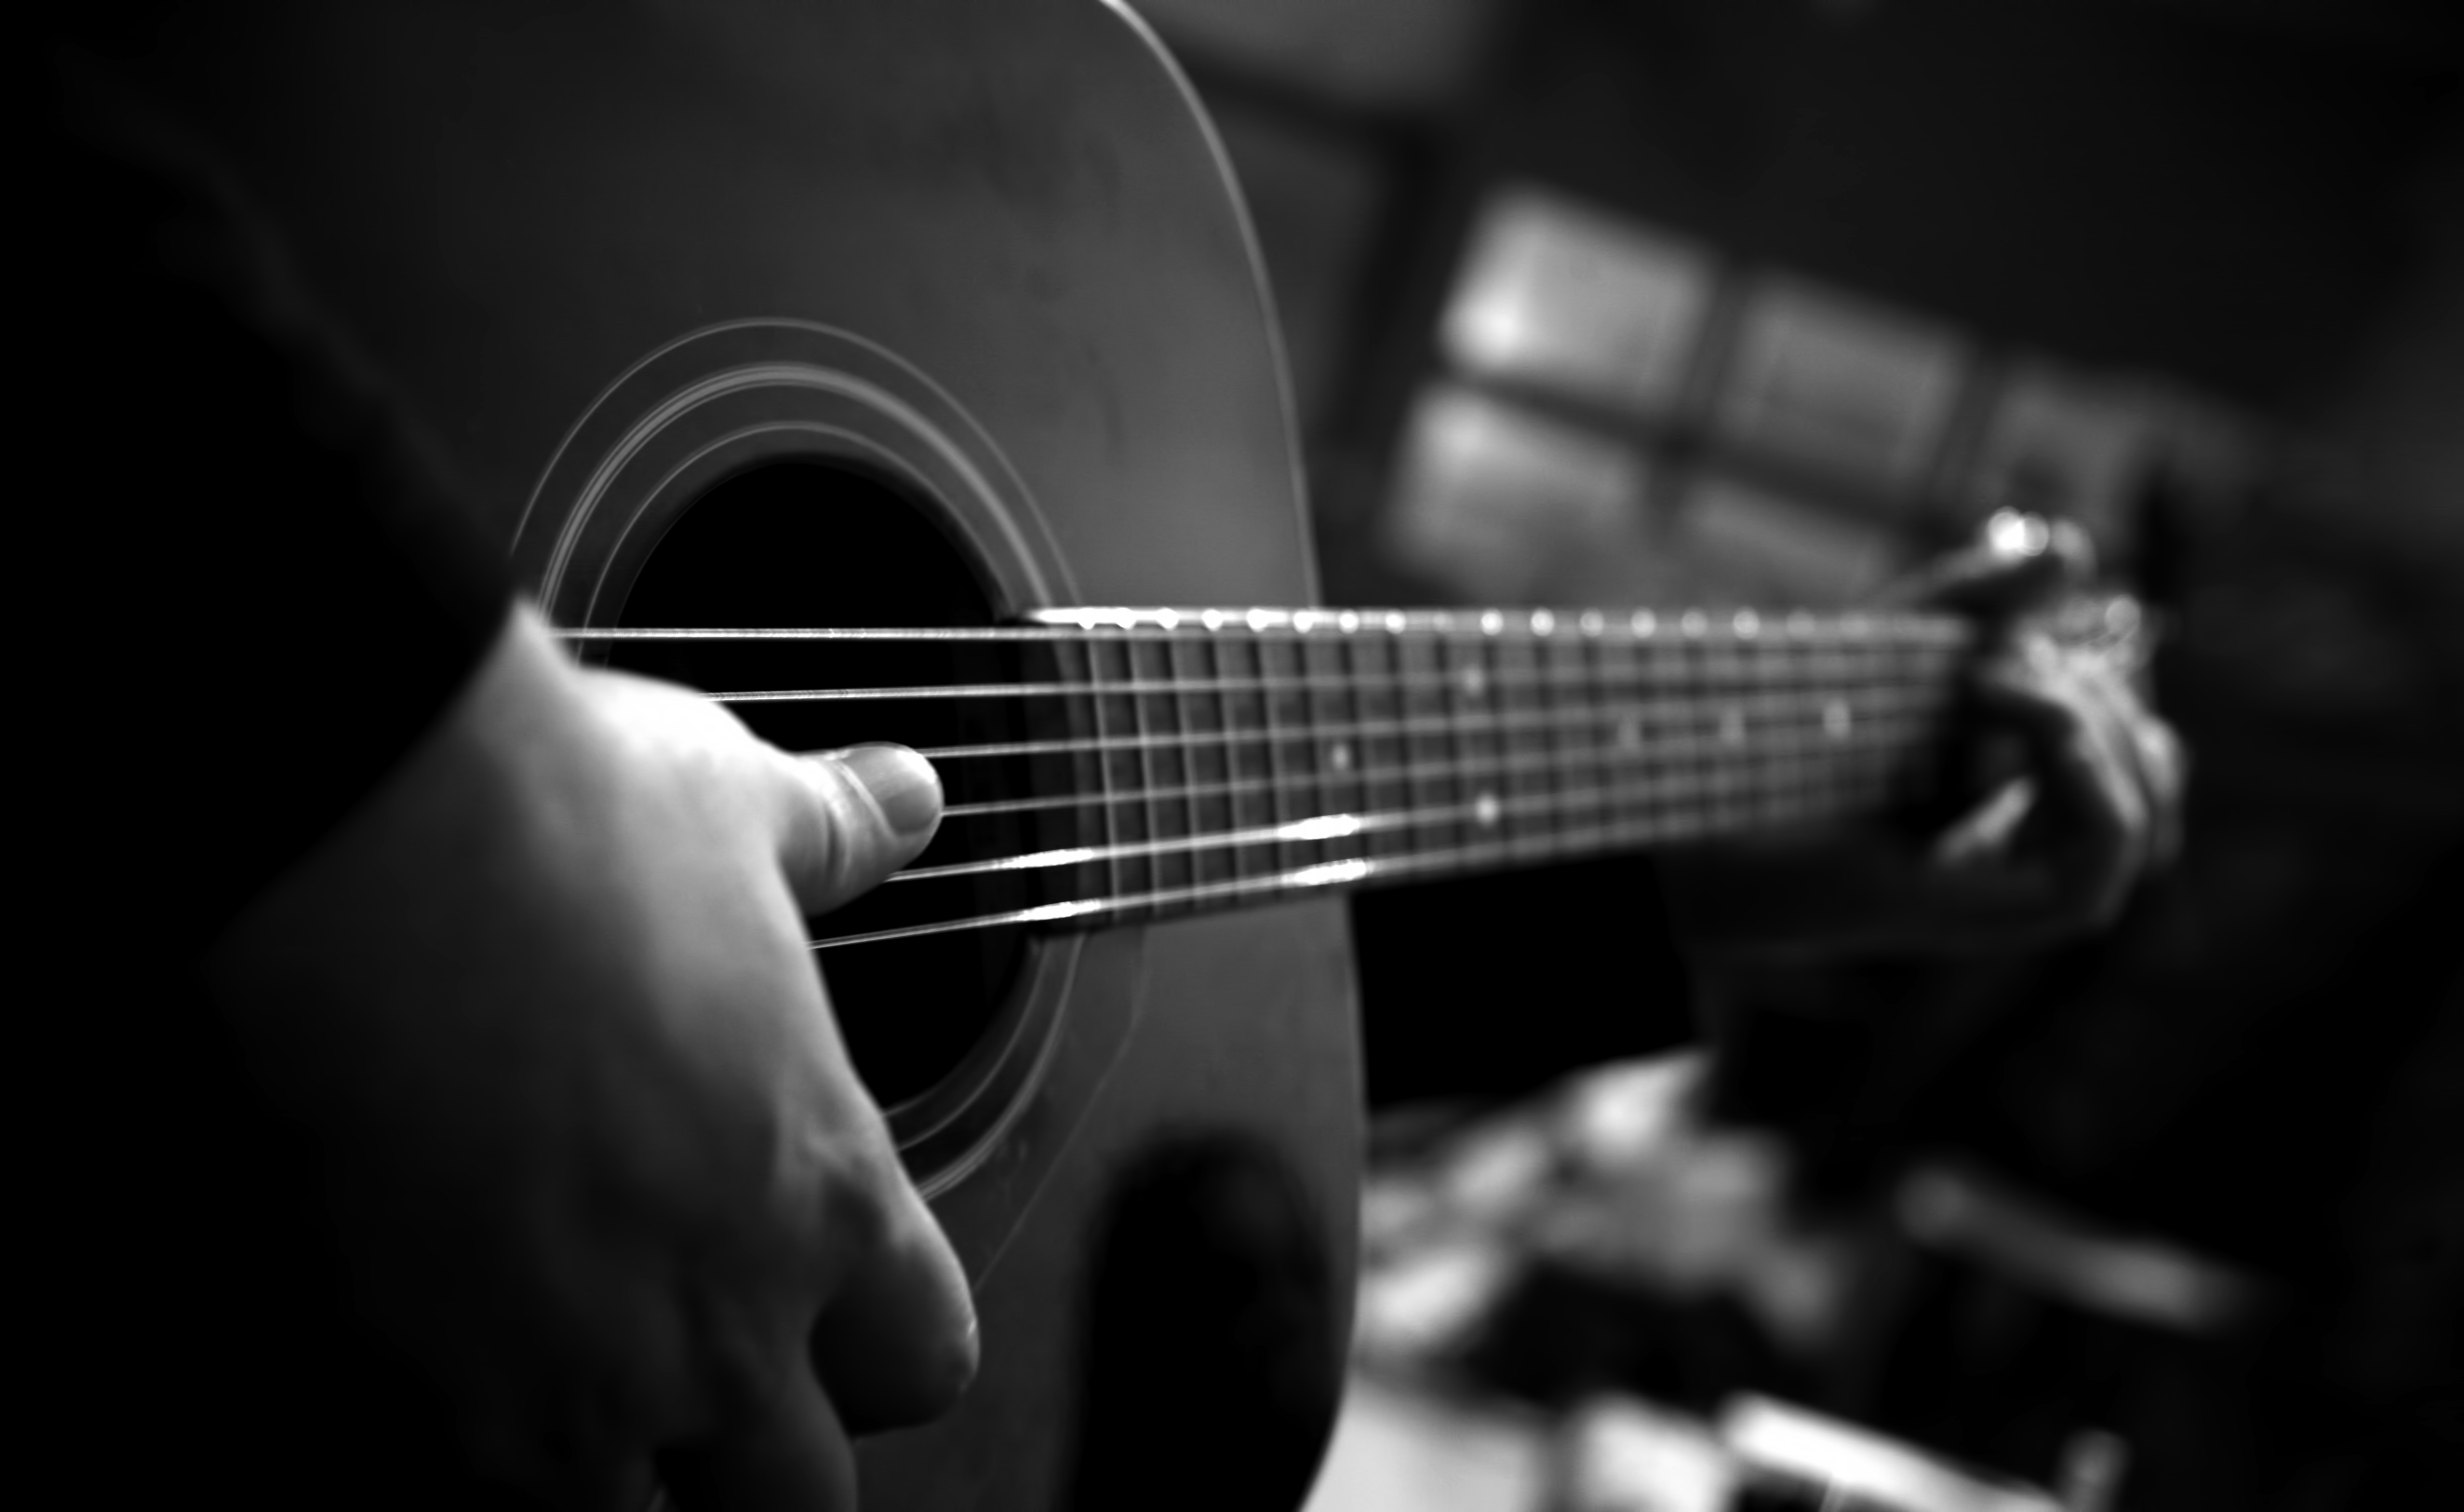 Cool Wallpaper Music Black And White - guitar  You Should Have_489688.jpg